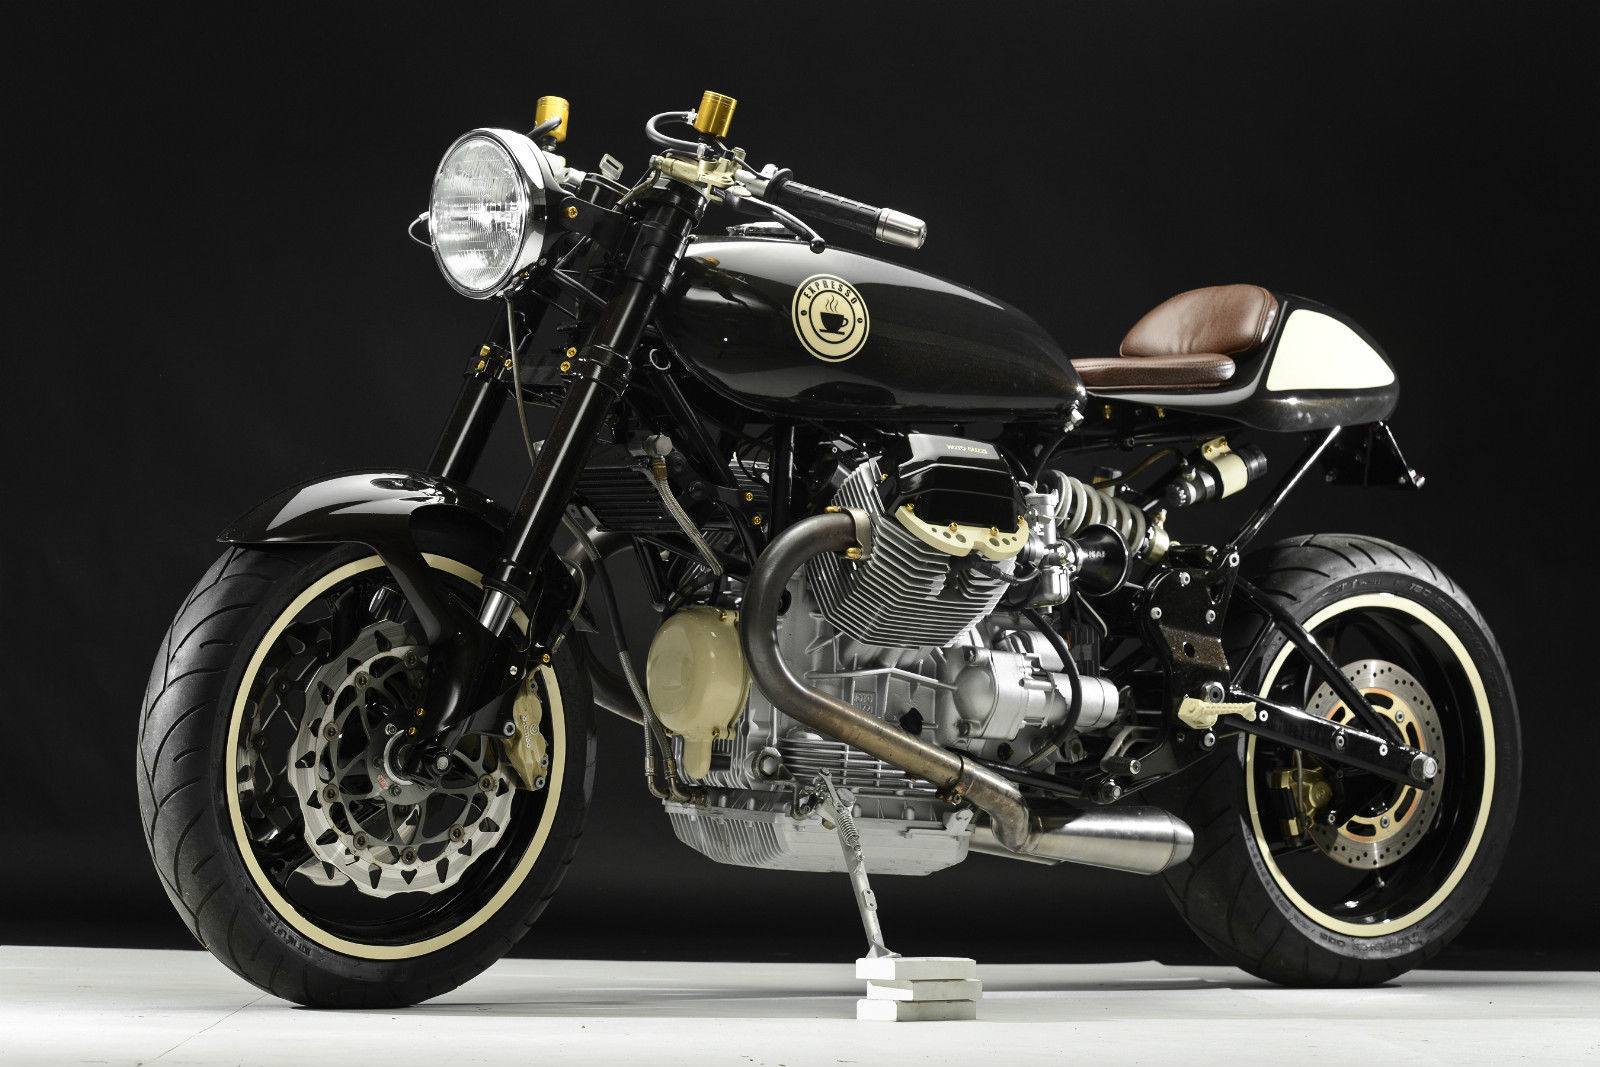 2003 Moto Guzzi Lemans Cafe Racer Bike Urious